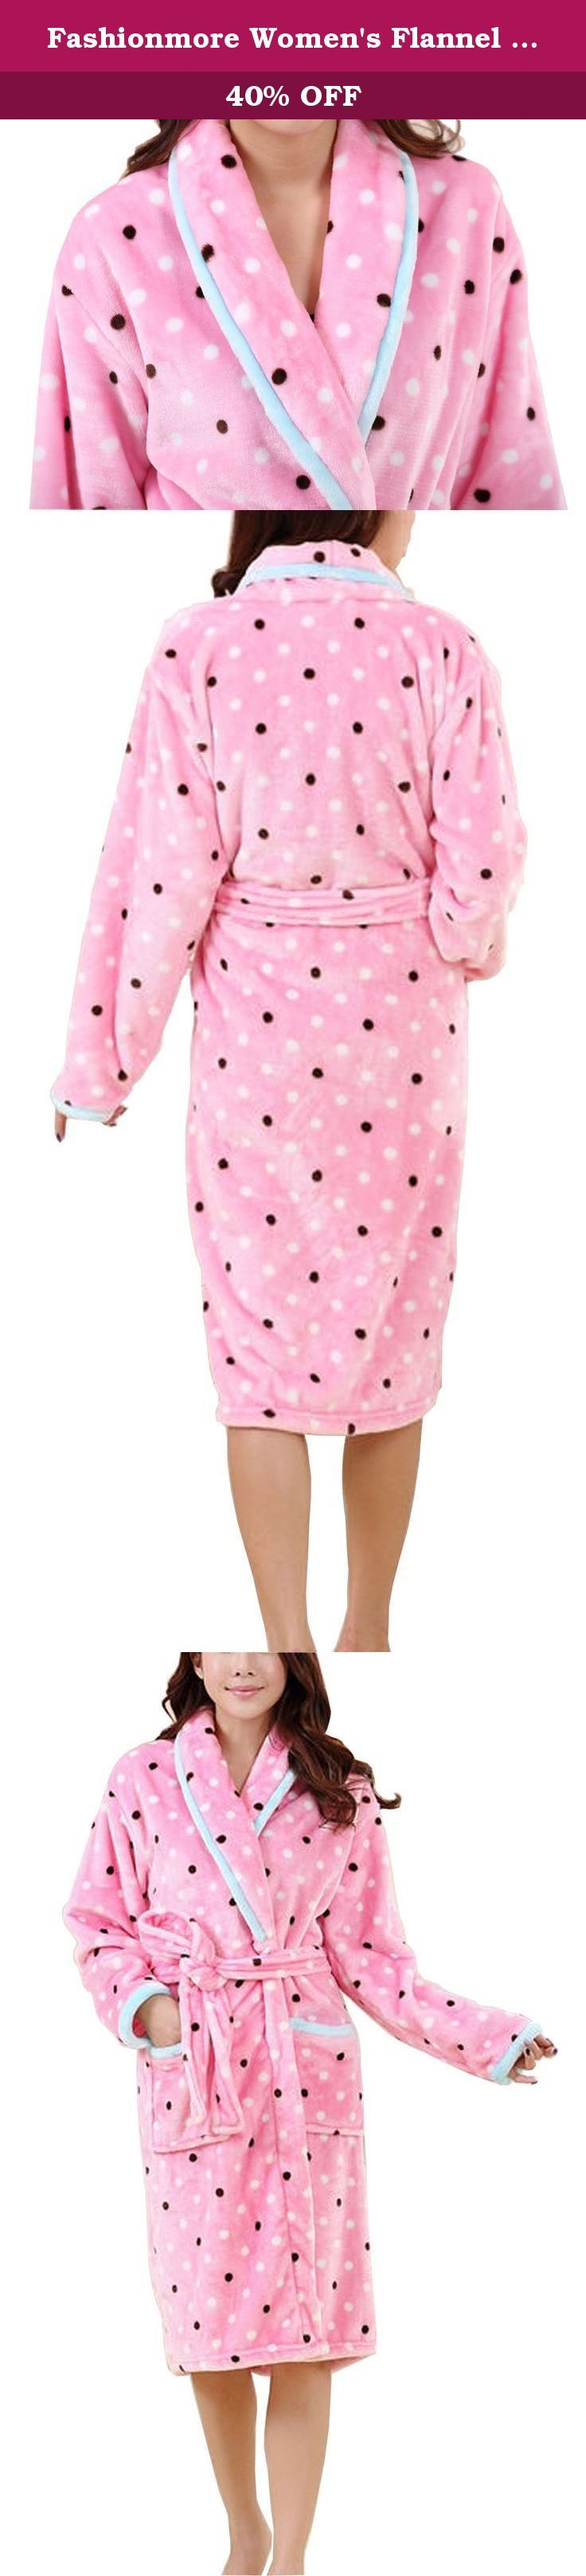 Fashionmore Women's Flannel Plush Polka Dot Sleepwear Bathrobe Pajamas Pink M. Please check your measurements to make sure the item fits before ordering. Use similar clothing to compare with the size. Asian Size Information(Inch) S Cloth Length: 43.3 Bust: 43.3 Shoulder: 18.9 Sleeve Length: 19.7 M Cloth Length: 45.3 Bust: 47.2 Shoulder: 19.7 Sleeve Length: 20.5 L Cloth Length: 47.2 Bust: 49.2 Shoulder: 20.5 Sleeve Length: 21.3 Washing & Care Instructions: 1.Machine washable,wash in warm...